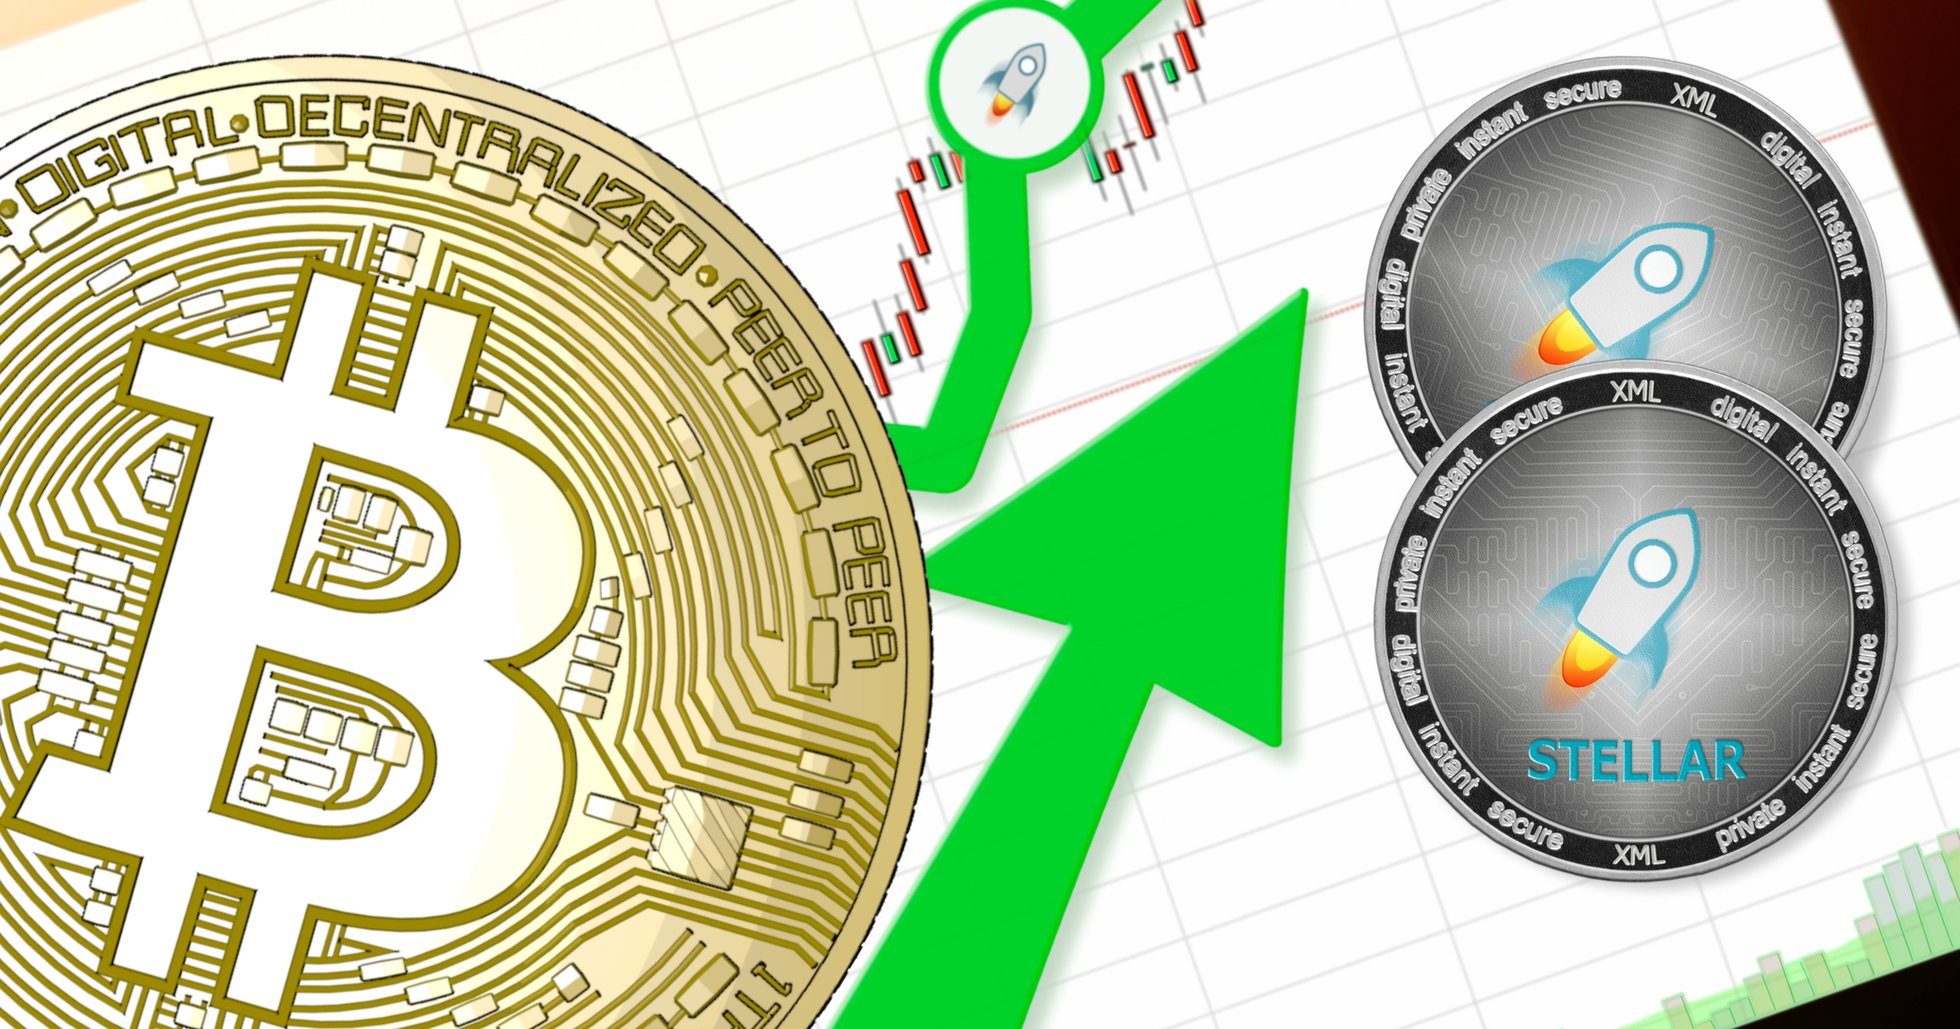 Daily crypto: Markets rise slightly and stellar increases the most of the biggest currencies.